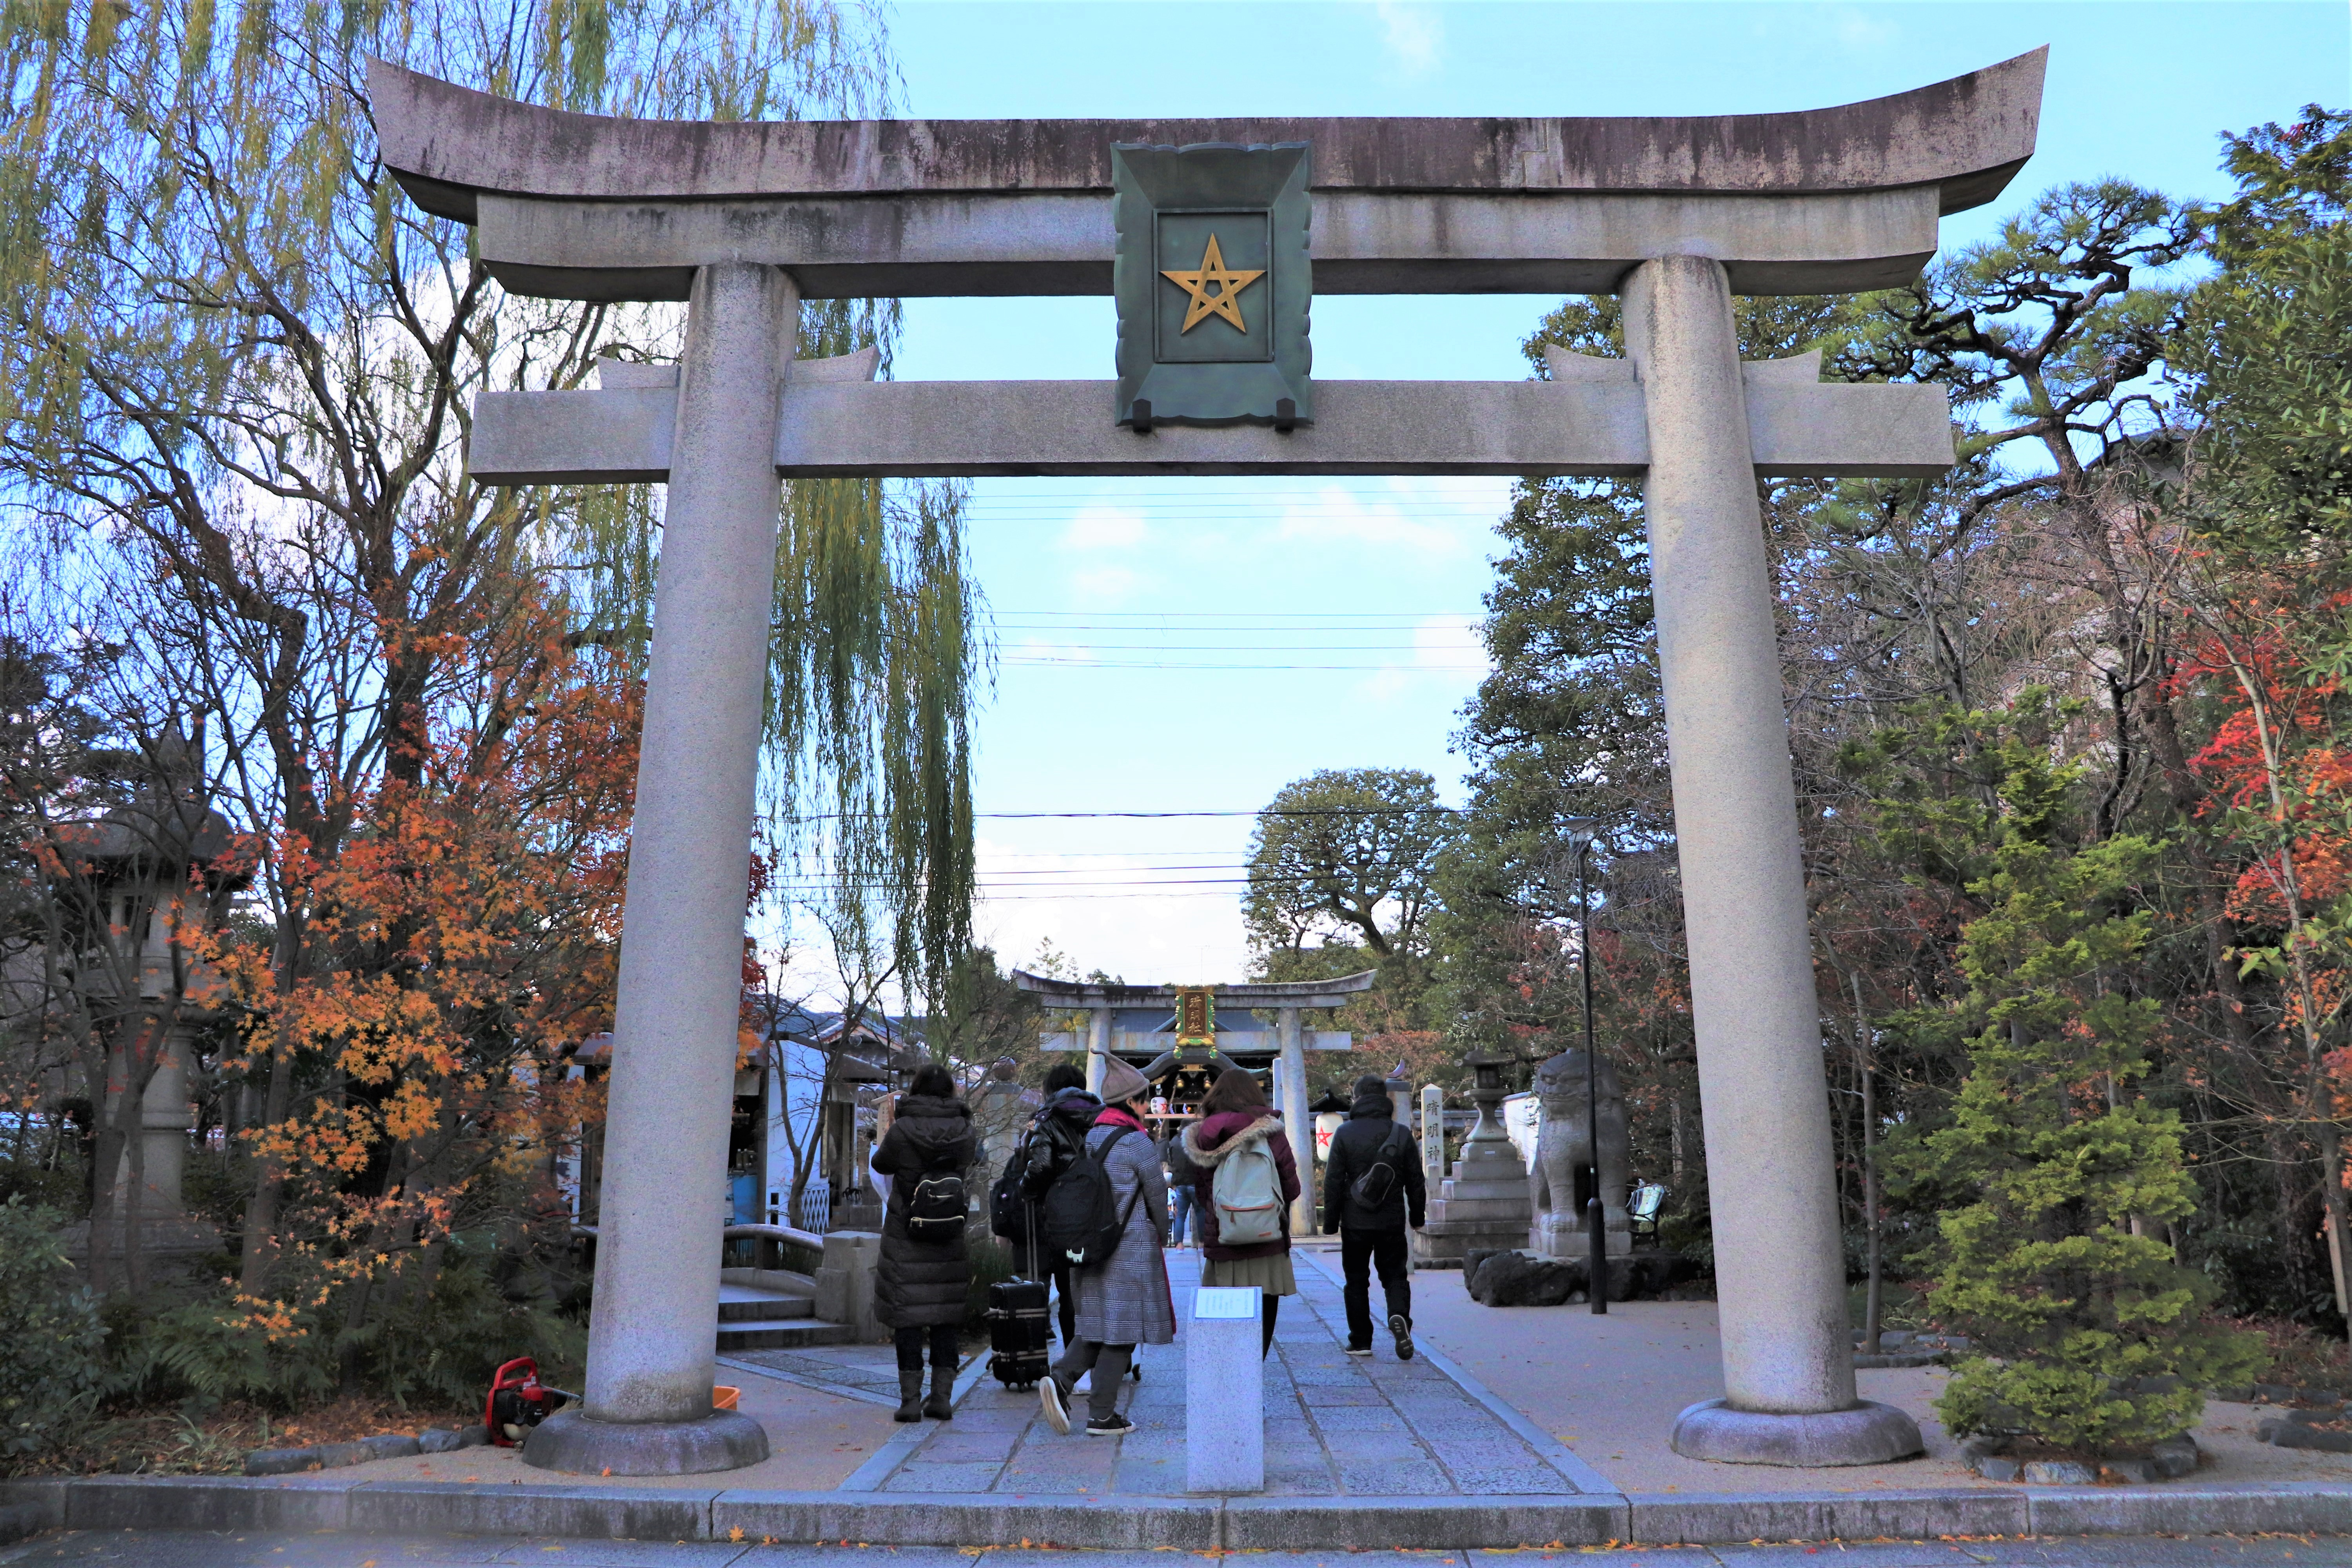 stone torii bearing the mark the Abe no Seimei at the entrance of Abe no Seimei shrine